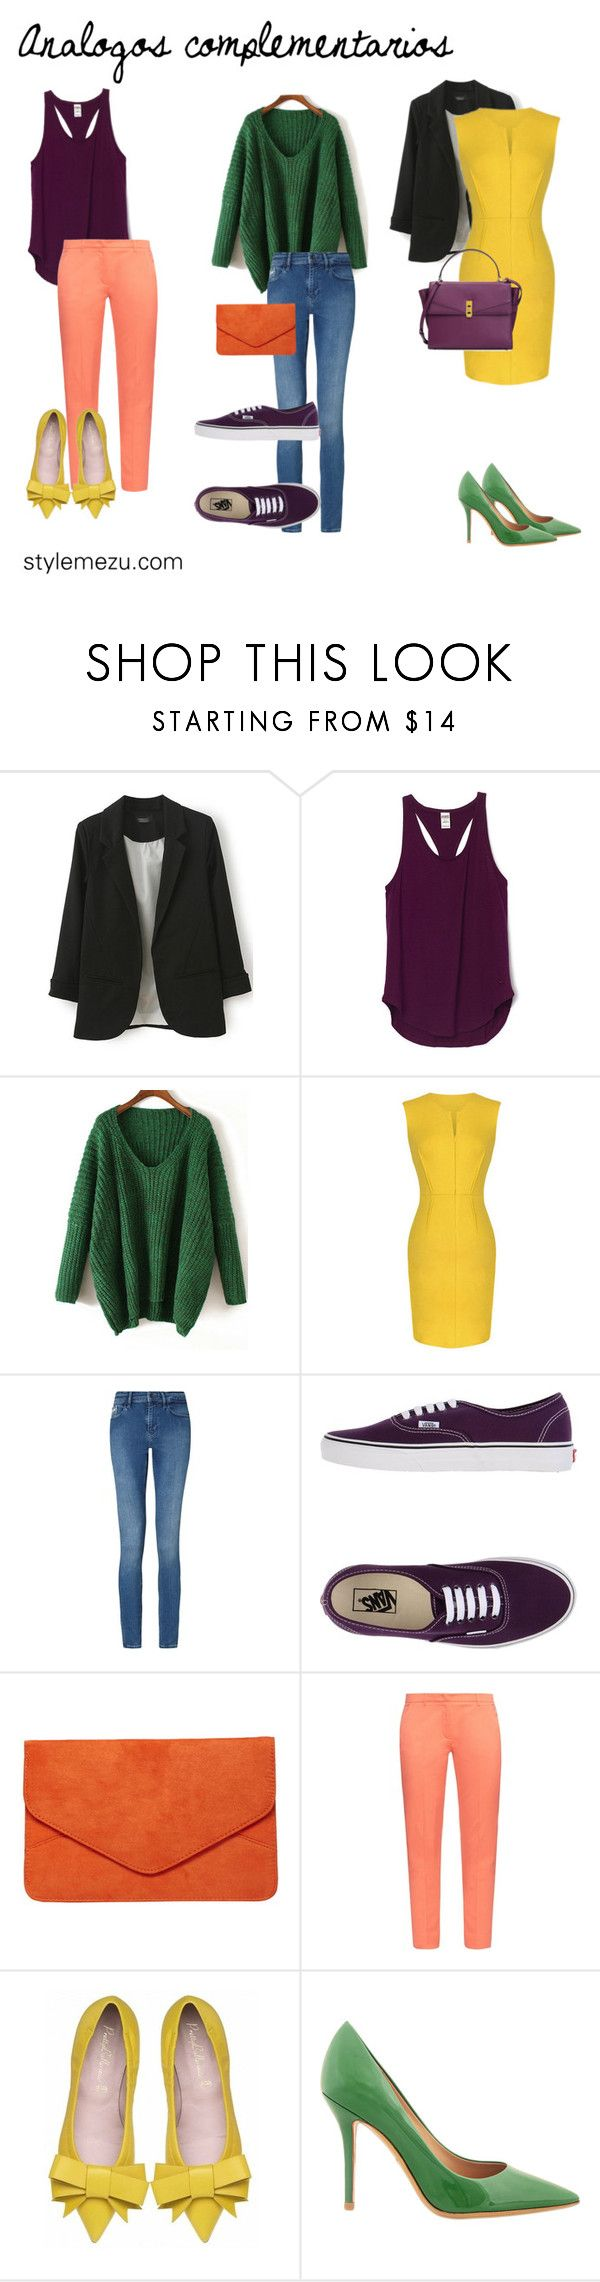 colores análogos by stylemezu on Polyvore featuring Weekend Max Mara, Calvin Klein, Salvatore Ferragamo, Vans, Henri Bendel and Dorothy Perkins